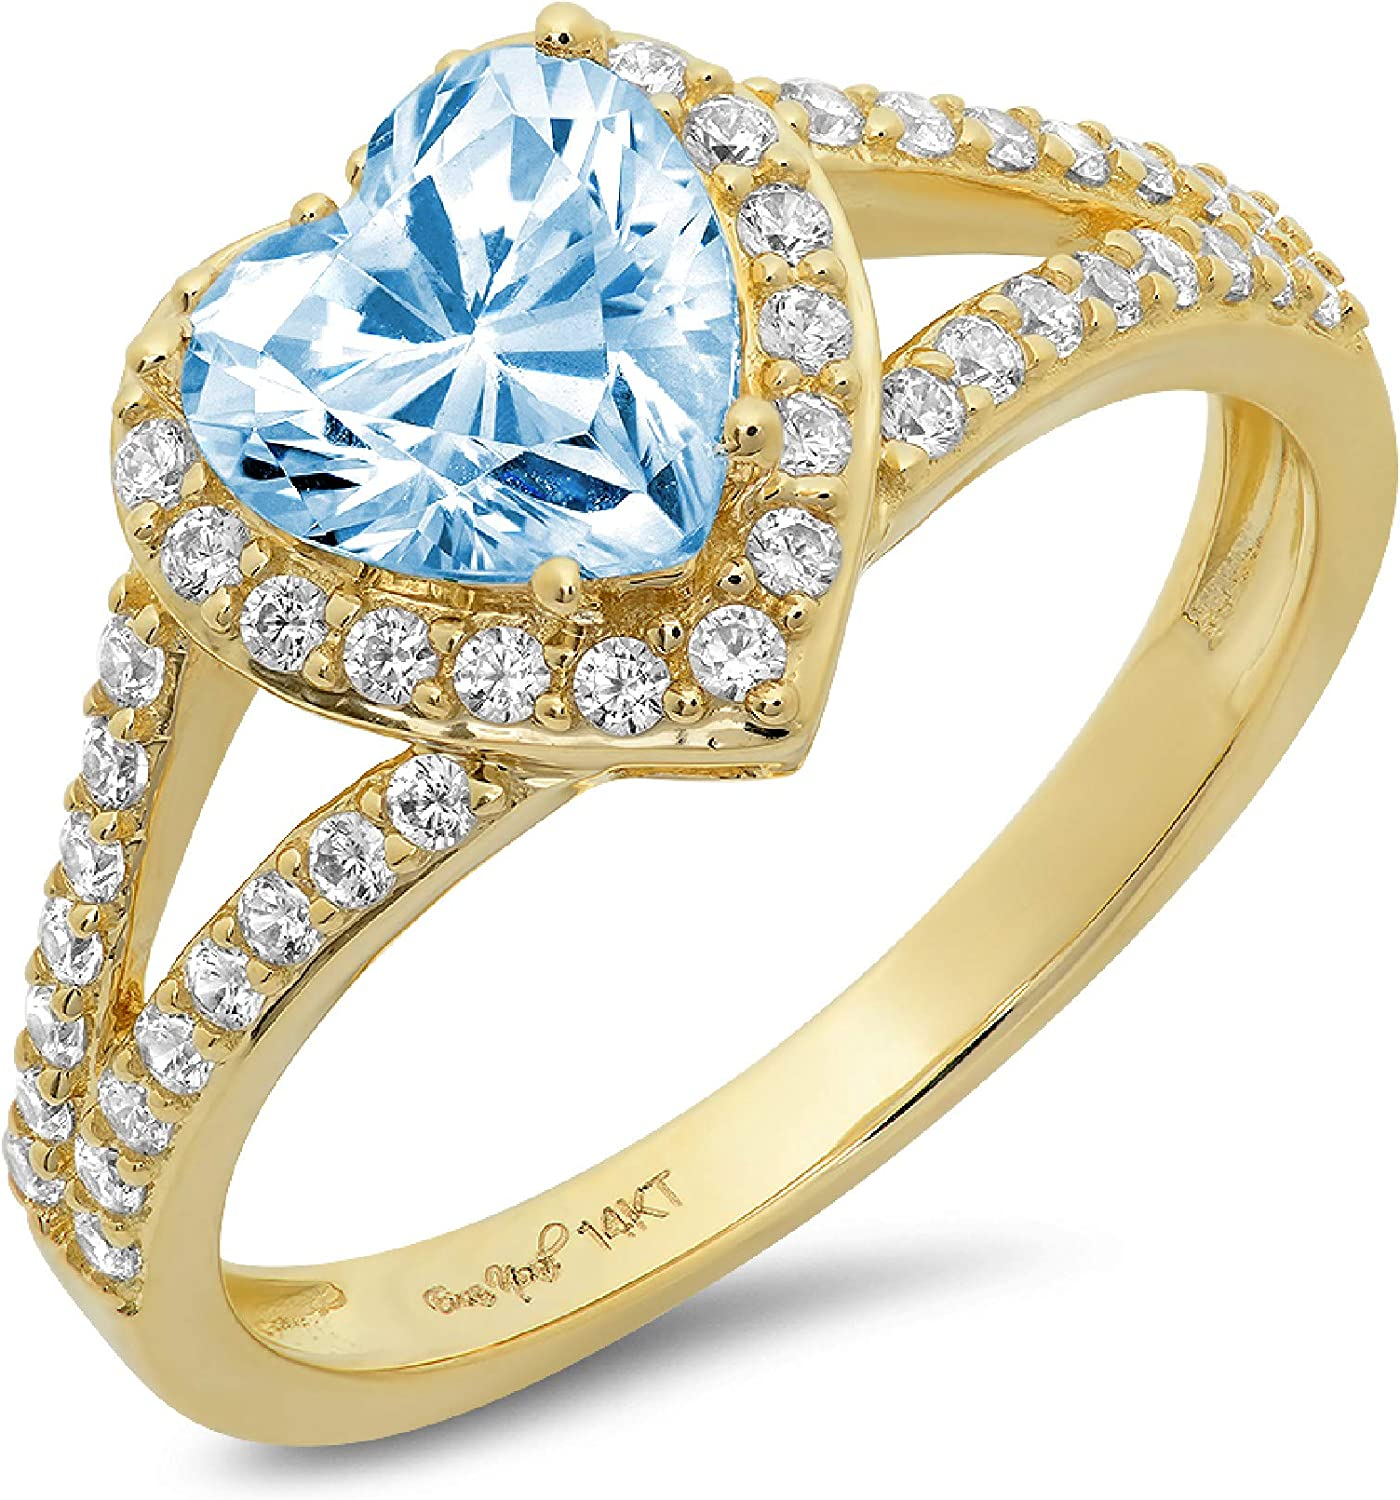 1.69ct Heart Cut Solitaire with Accent Halo split shank Natural Sky Blue Topaz Gem Stone Ideal VVS1 Engagement Promise Statement Anniversary Bridal Wedding ring 14k Yellow Gold